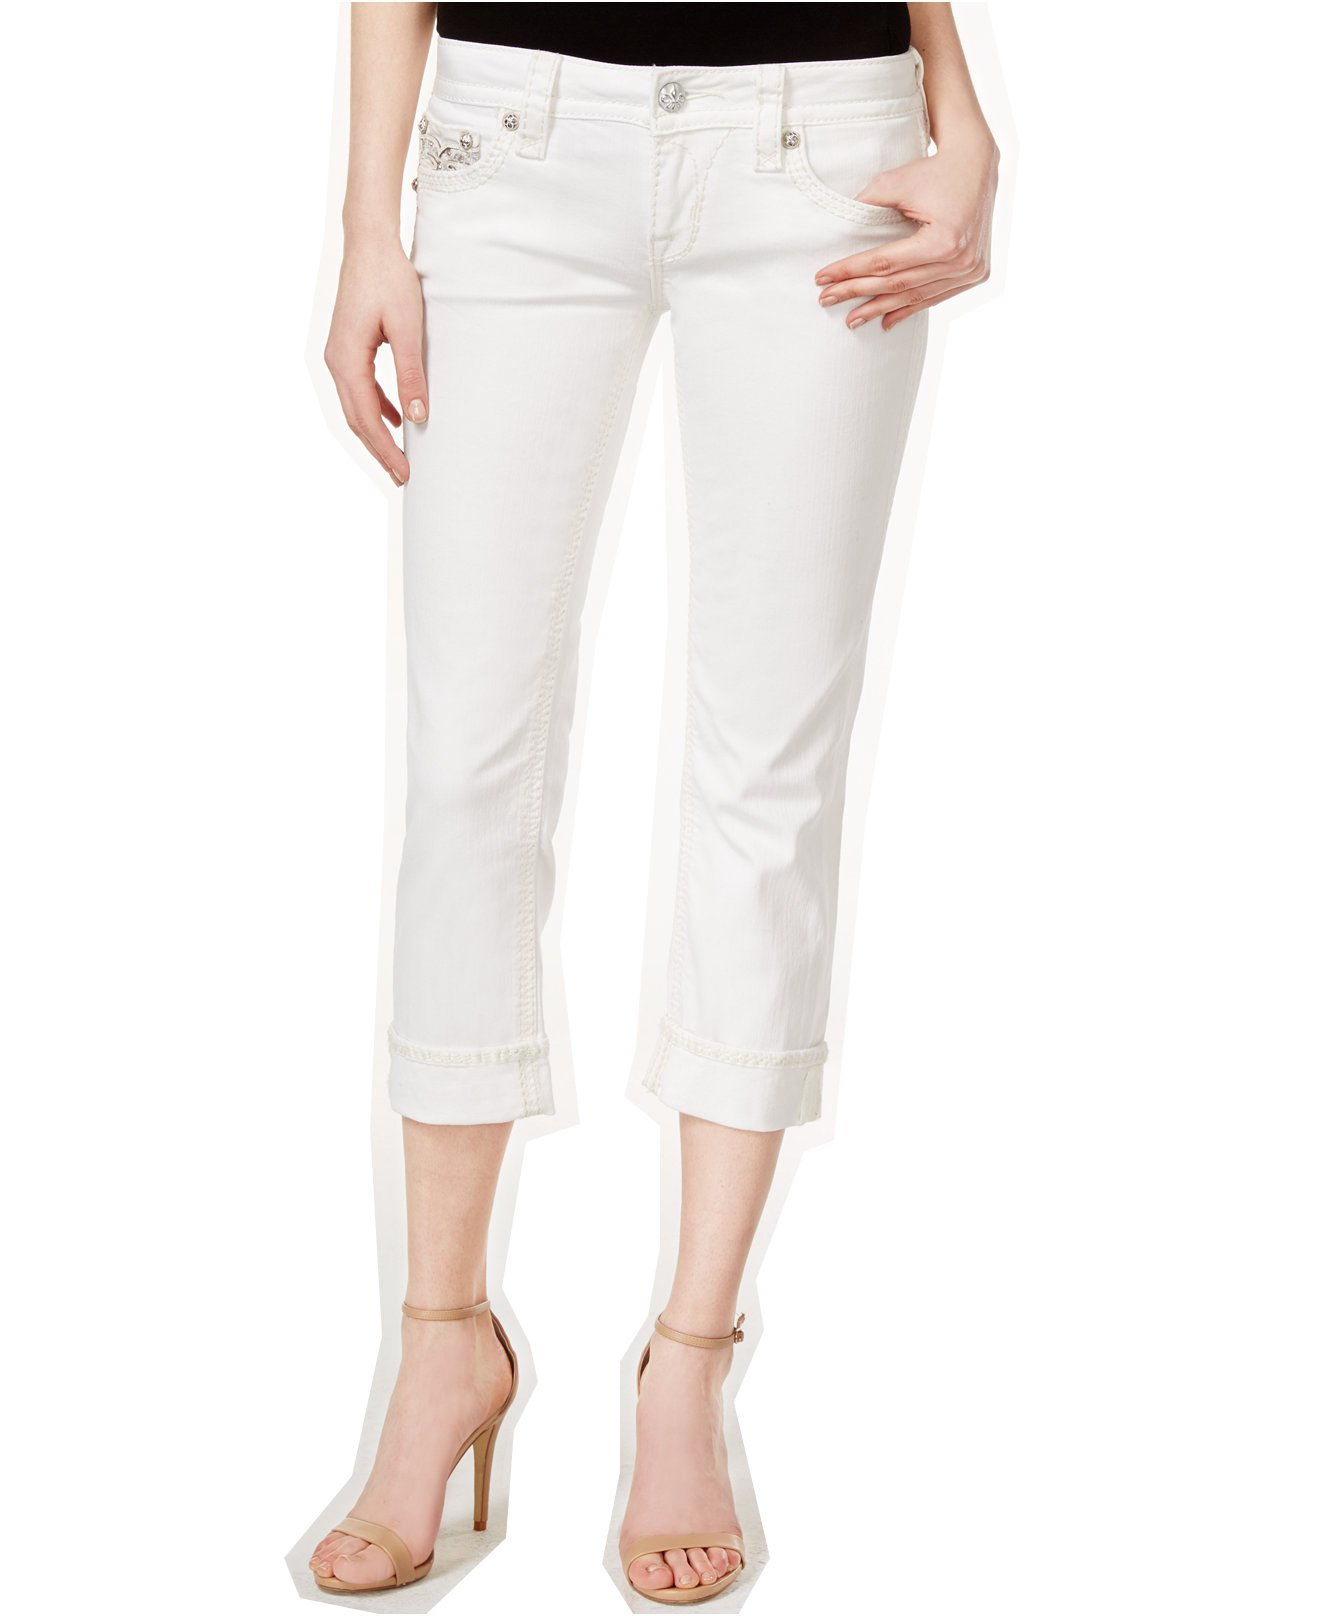 Rock Revival Women's Katie Cropped Embellished Capri Jeans (29 x 22L, White)